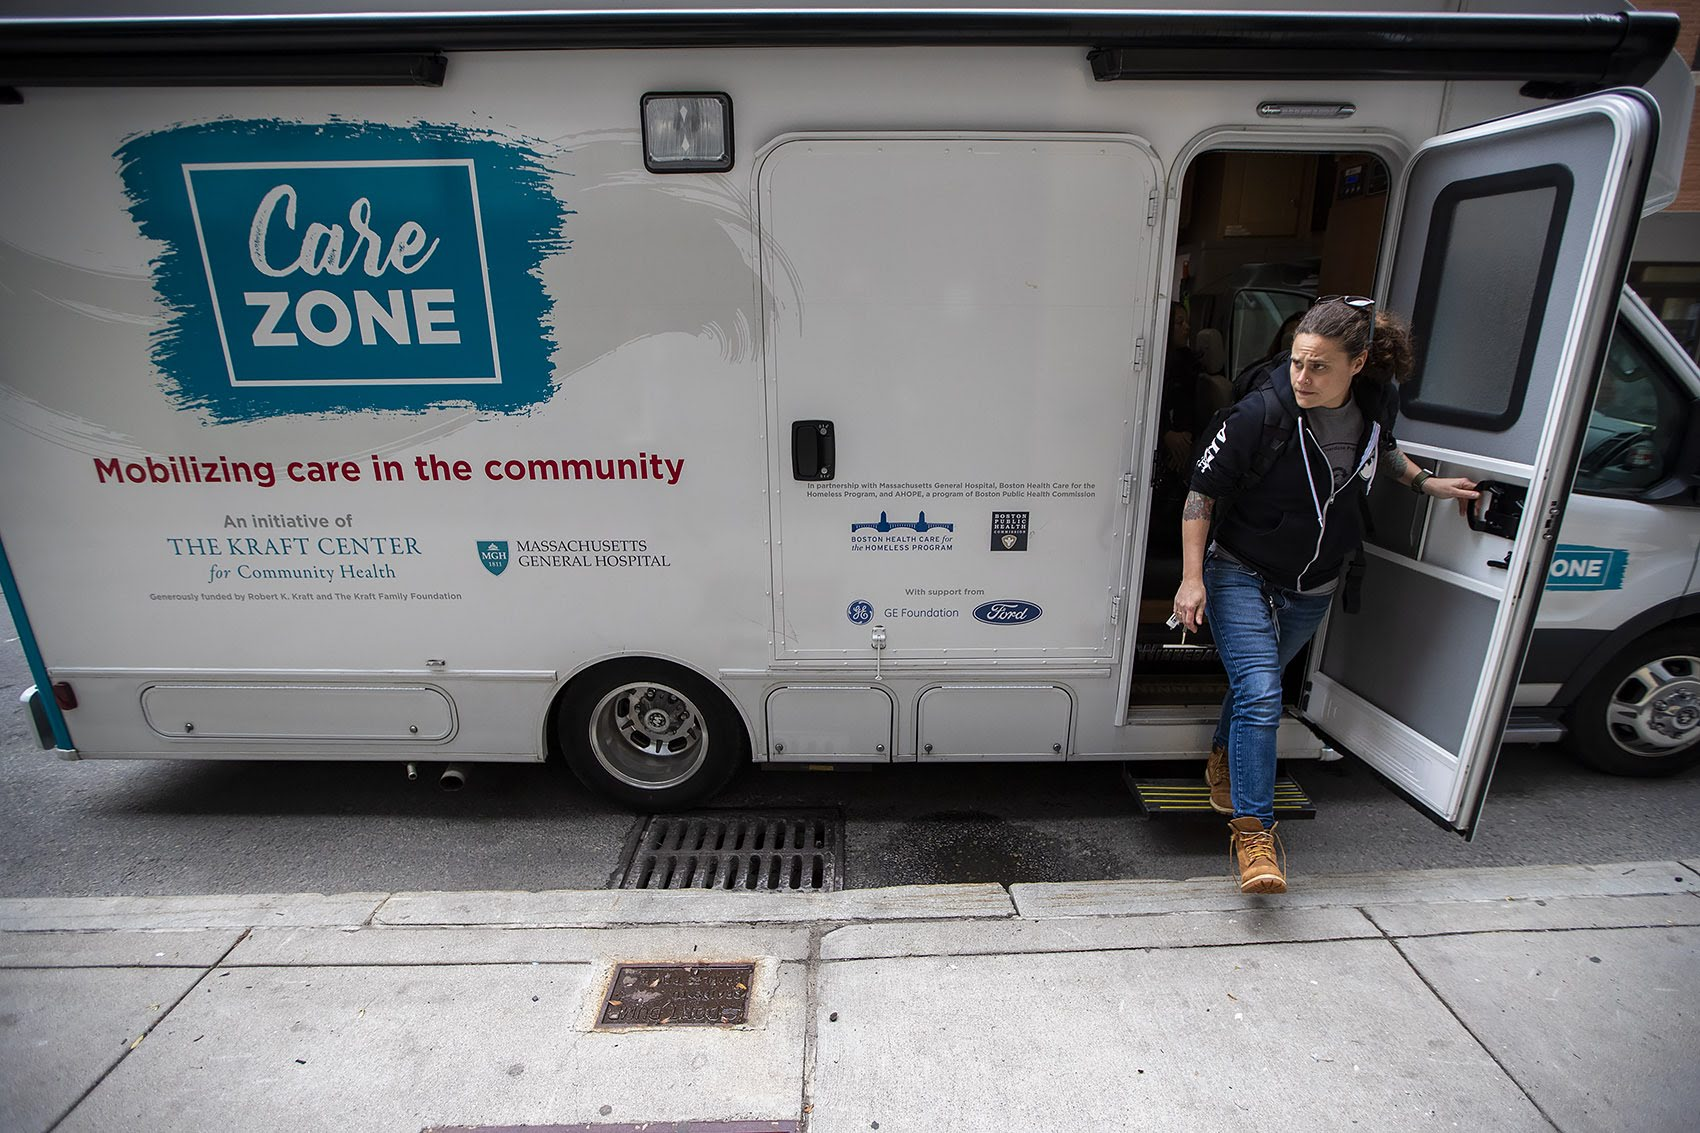 Sarah Mackin exits the Care Zone van after it parks on Haverhill Street near North Station. The outreach workers will walk around the area to look for opioid users who need assistance. (Jesse Costa/WBUR)